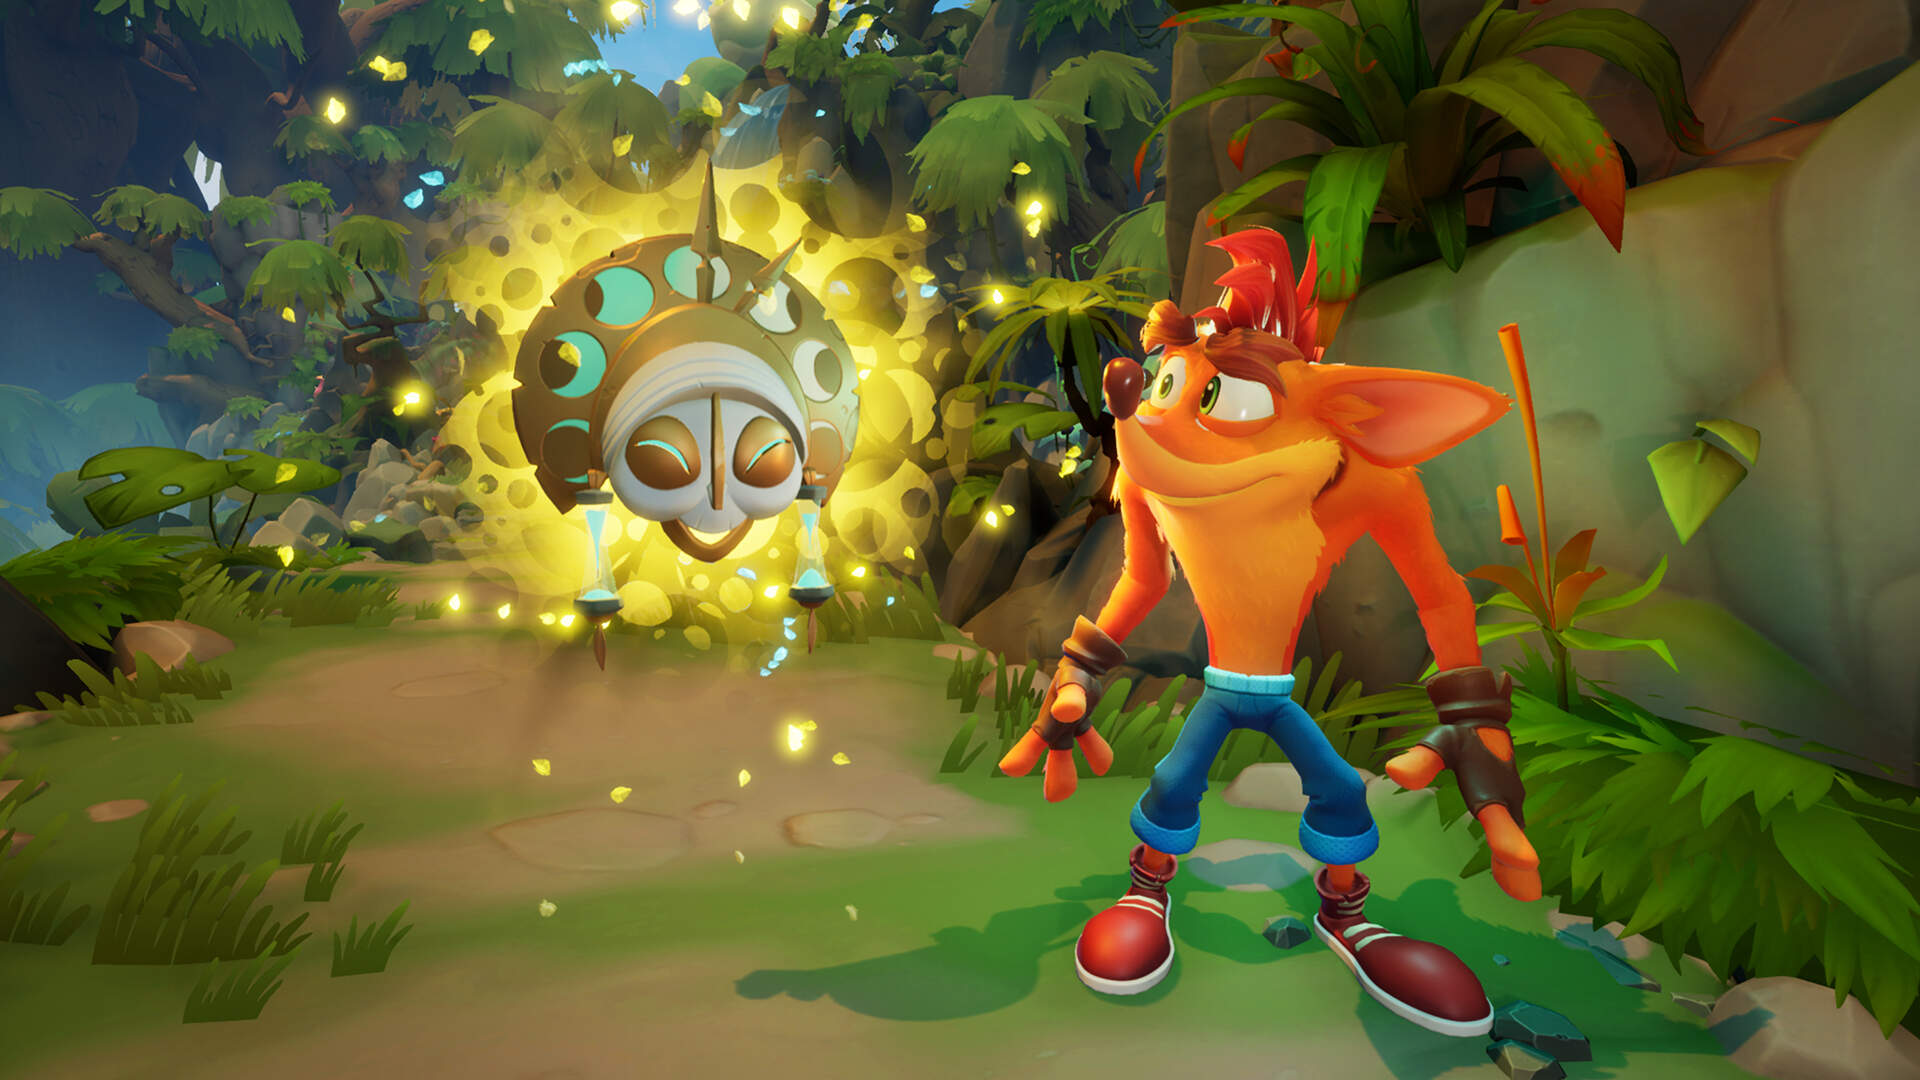 Crash Bandicoot 4 Will Have a Demo For Those Who Pre-Order